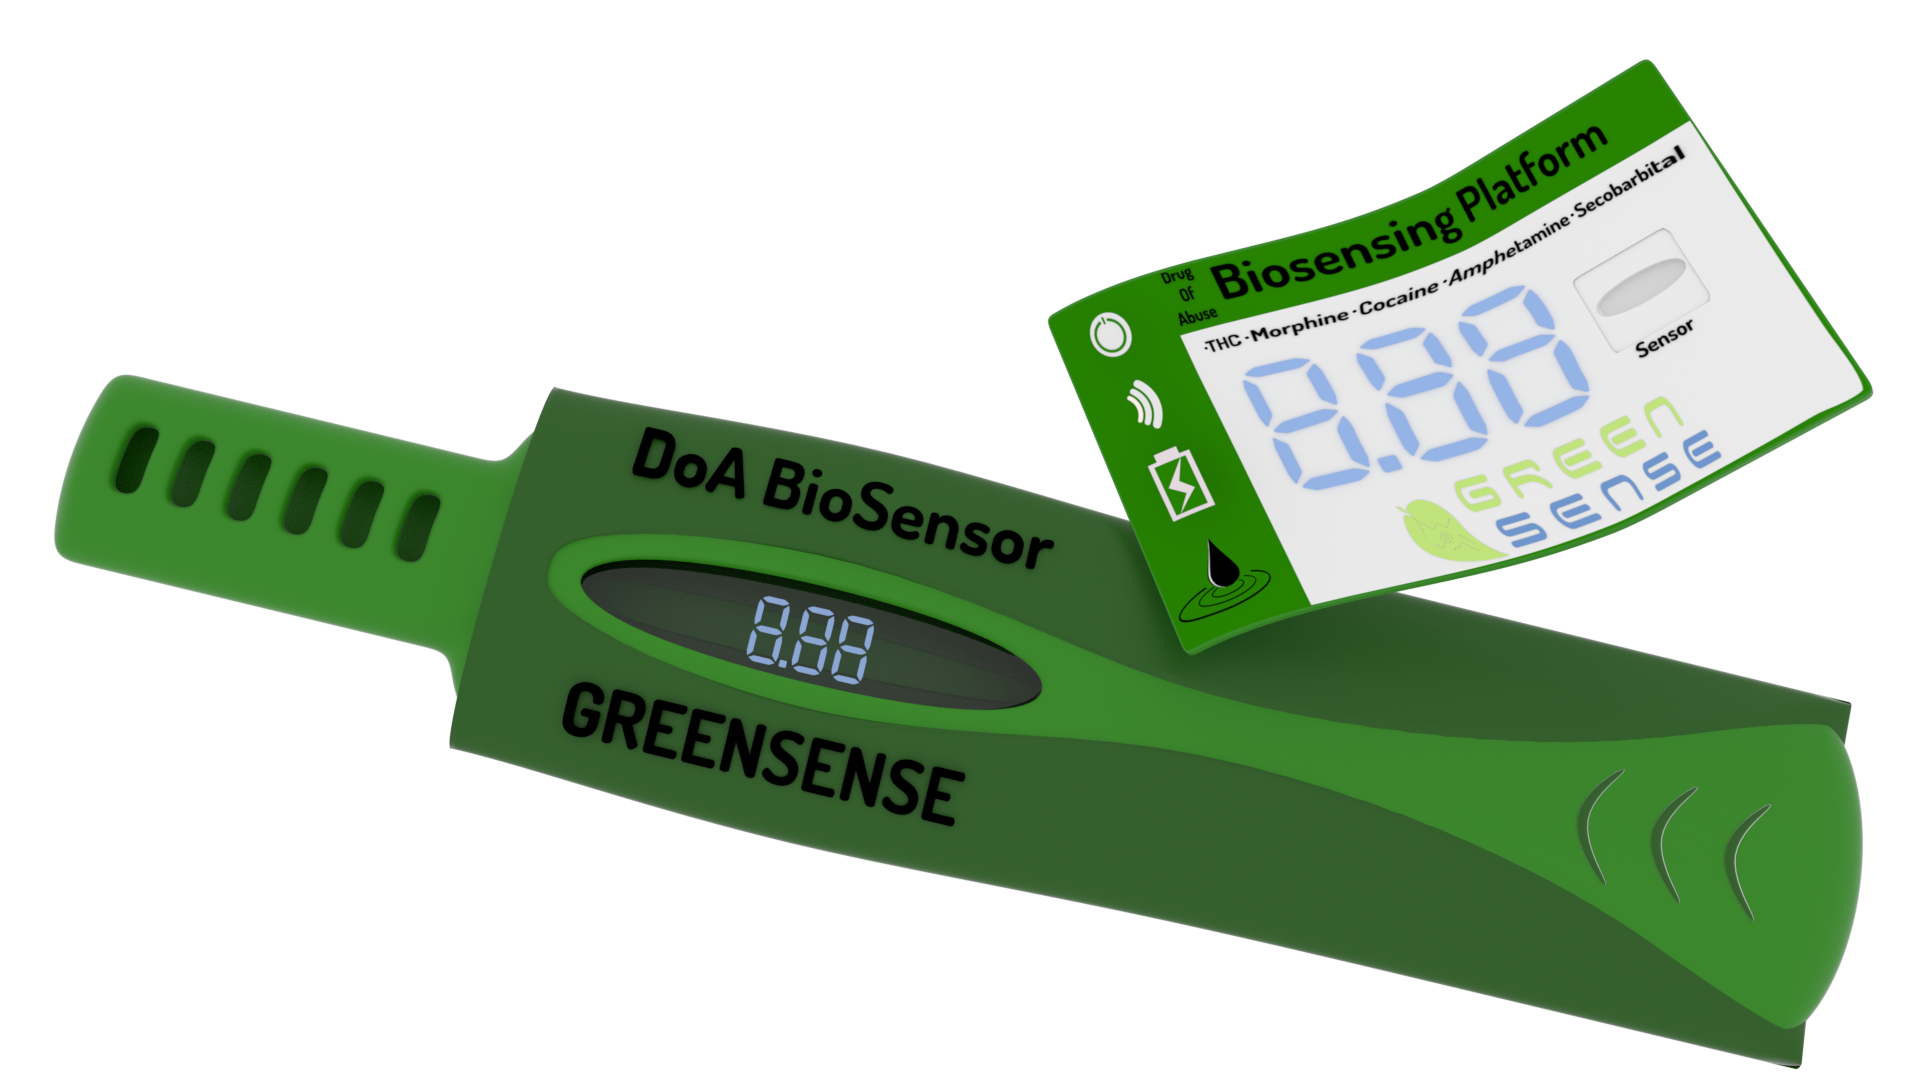 Greensense for DoA